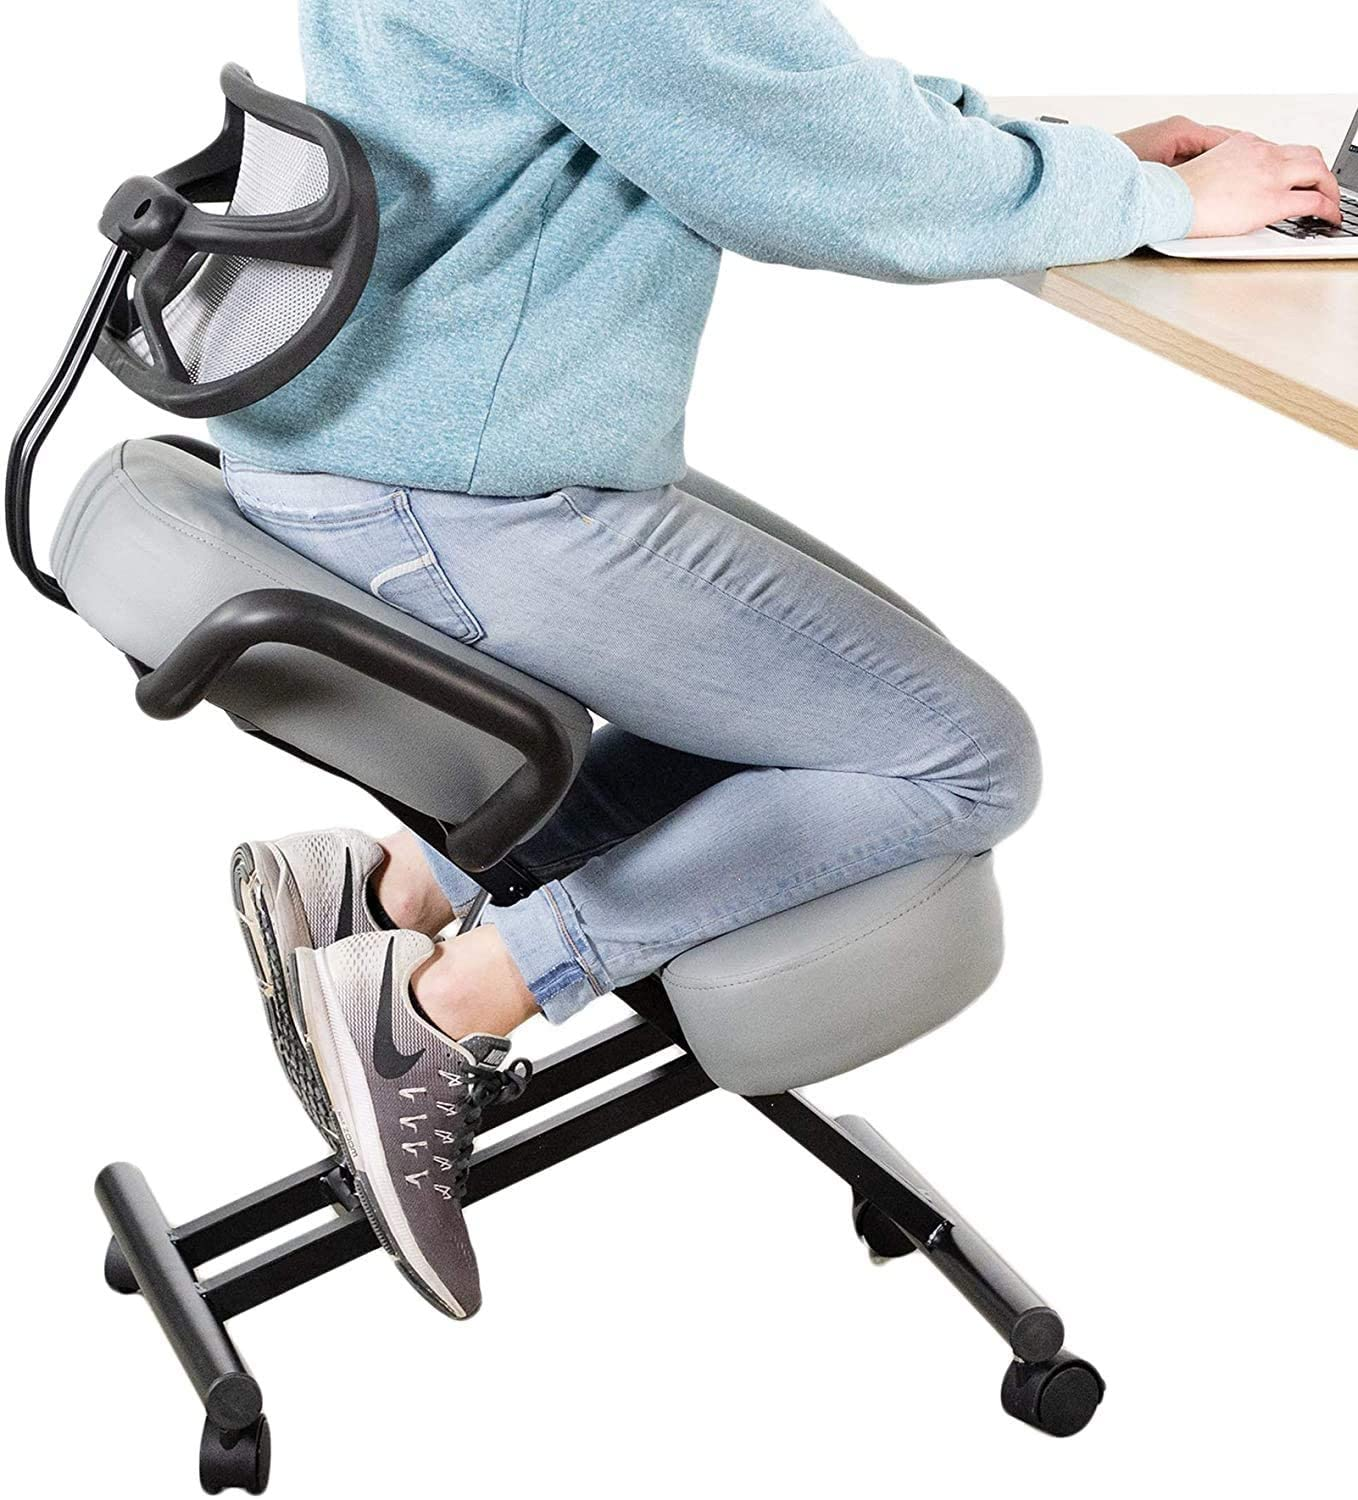 DRAGONN (by VIVO) Ergonomic Kneeling Chair with Back Support, Adjustable Stool for Home and Office with Angled Seat for Better Posture - Thick Comfortable Cushions, Gray (DN-CH-K02G)